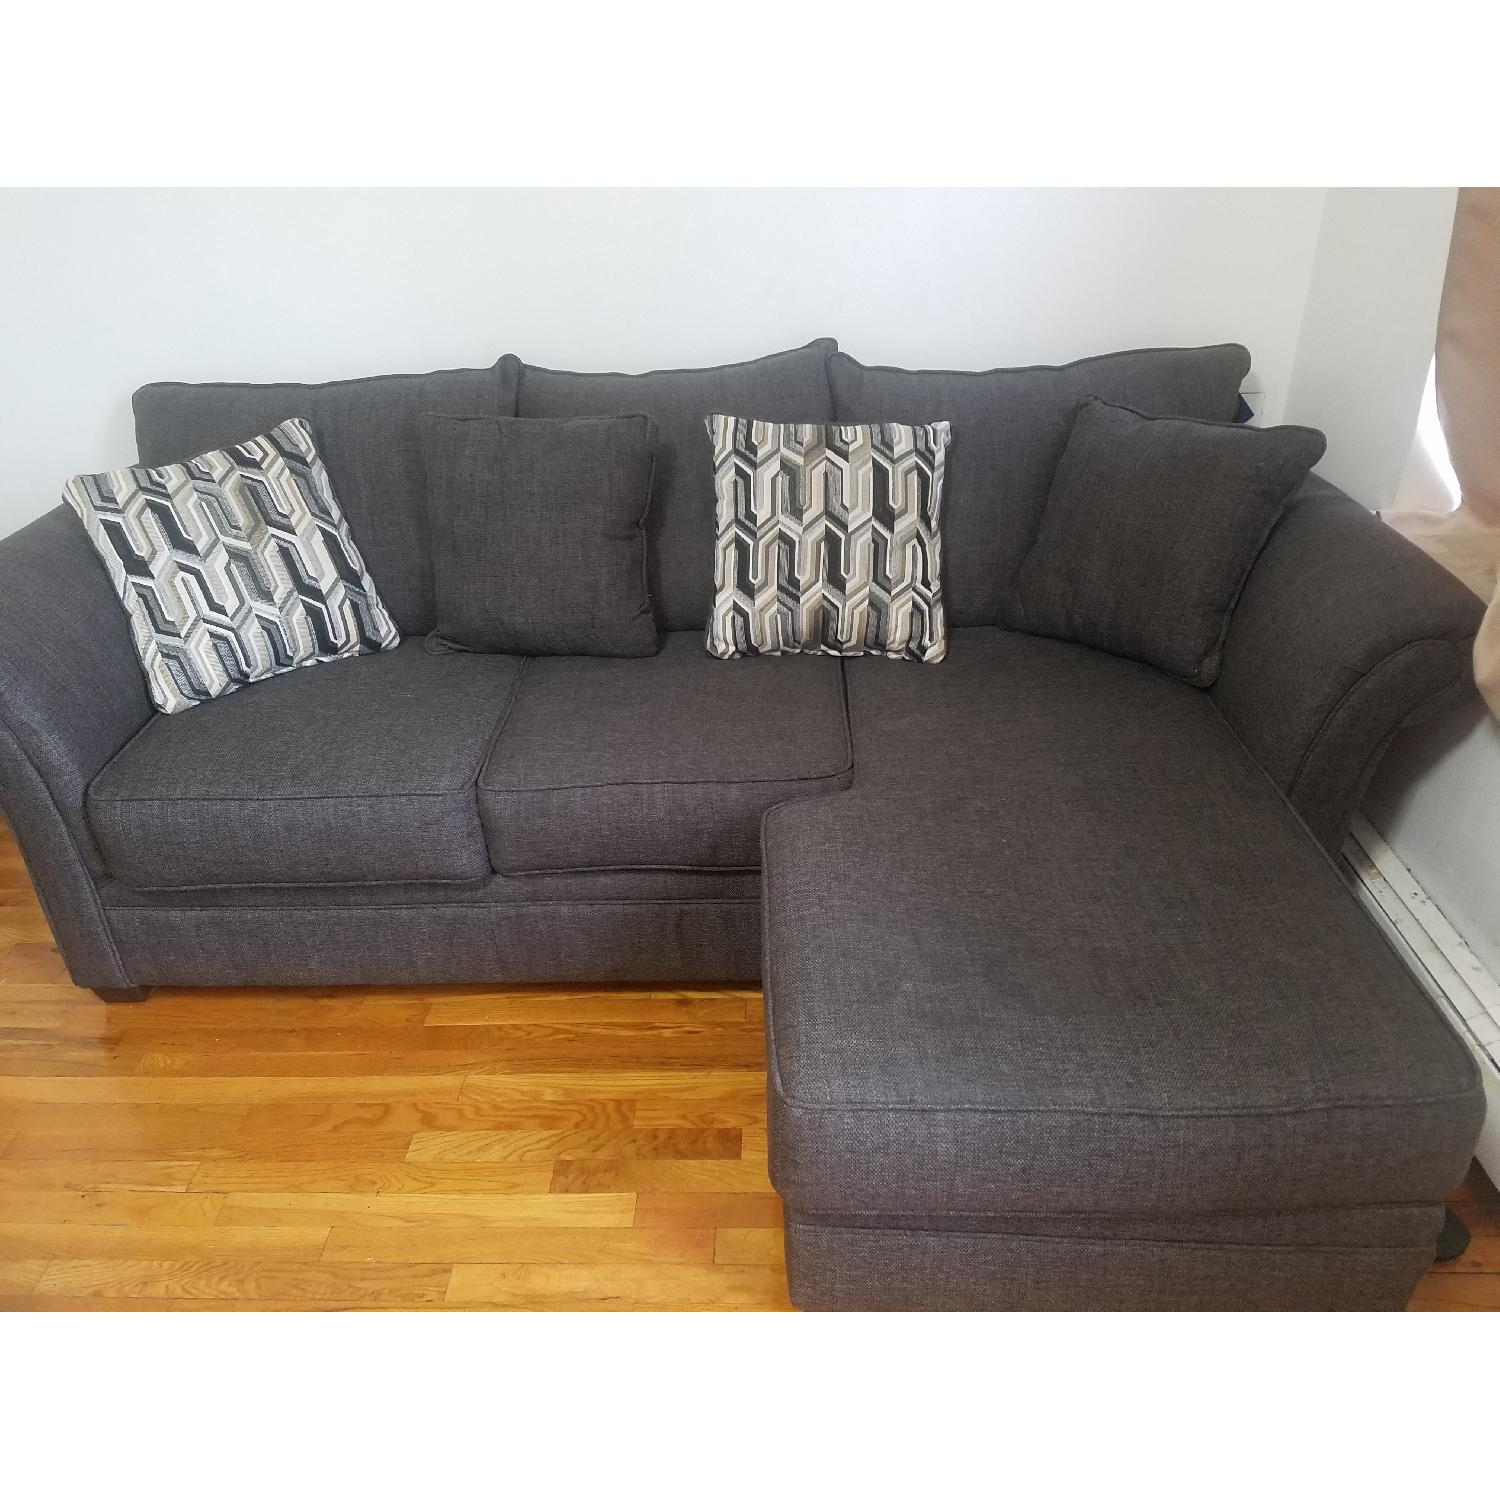 Serta Upholstery Grey Sectional Sofa; Serta Upholstery Grey Sectional  Sofa-0